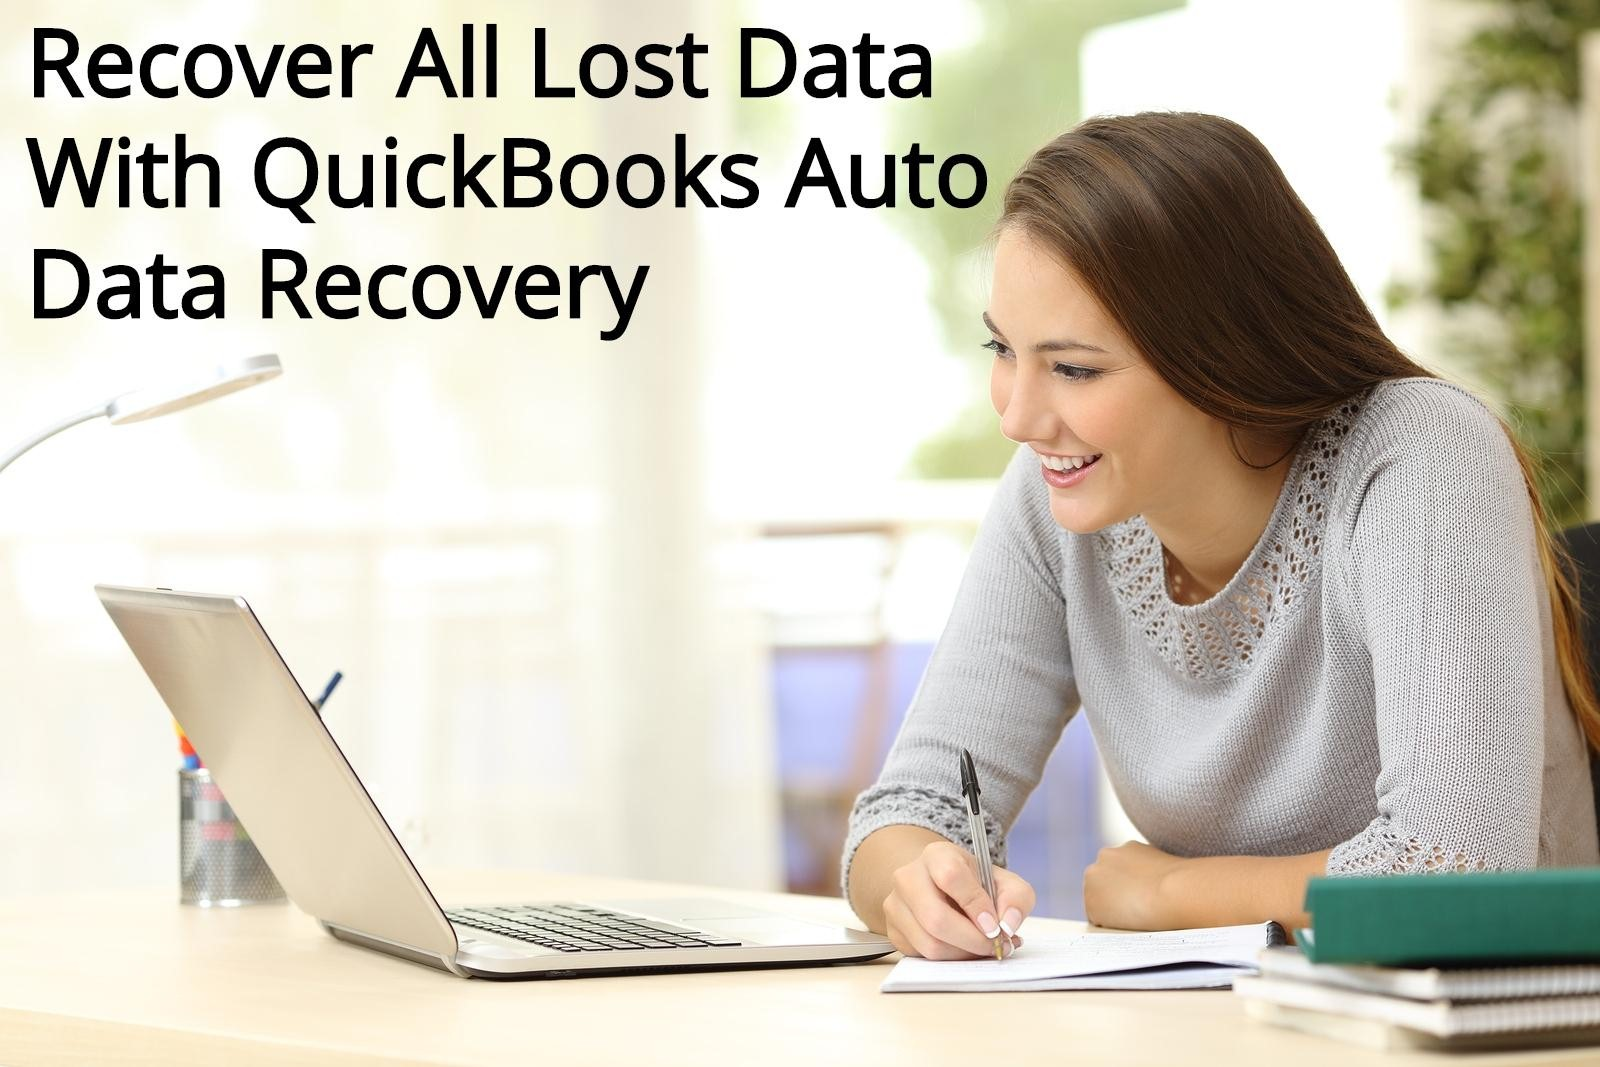 Quickbooks Recovery Tool to recover lost data